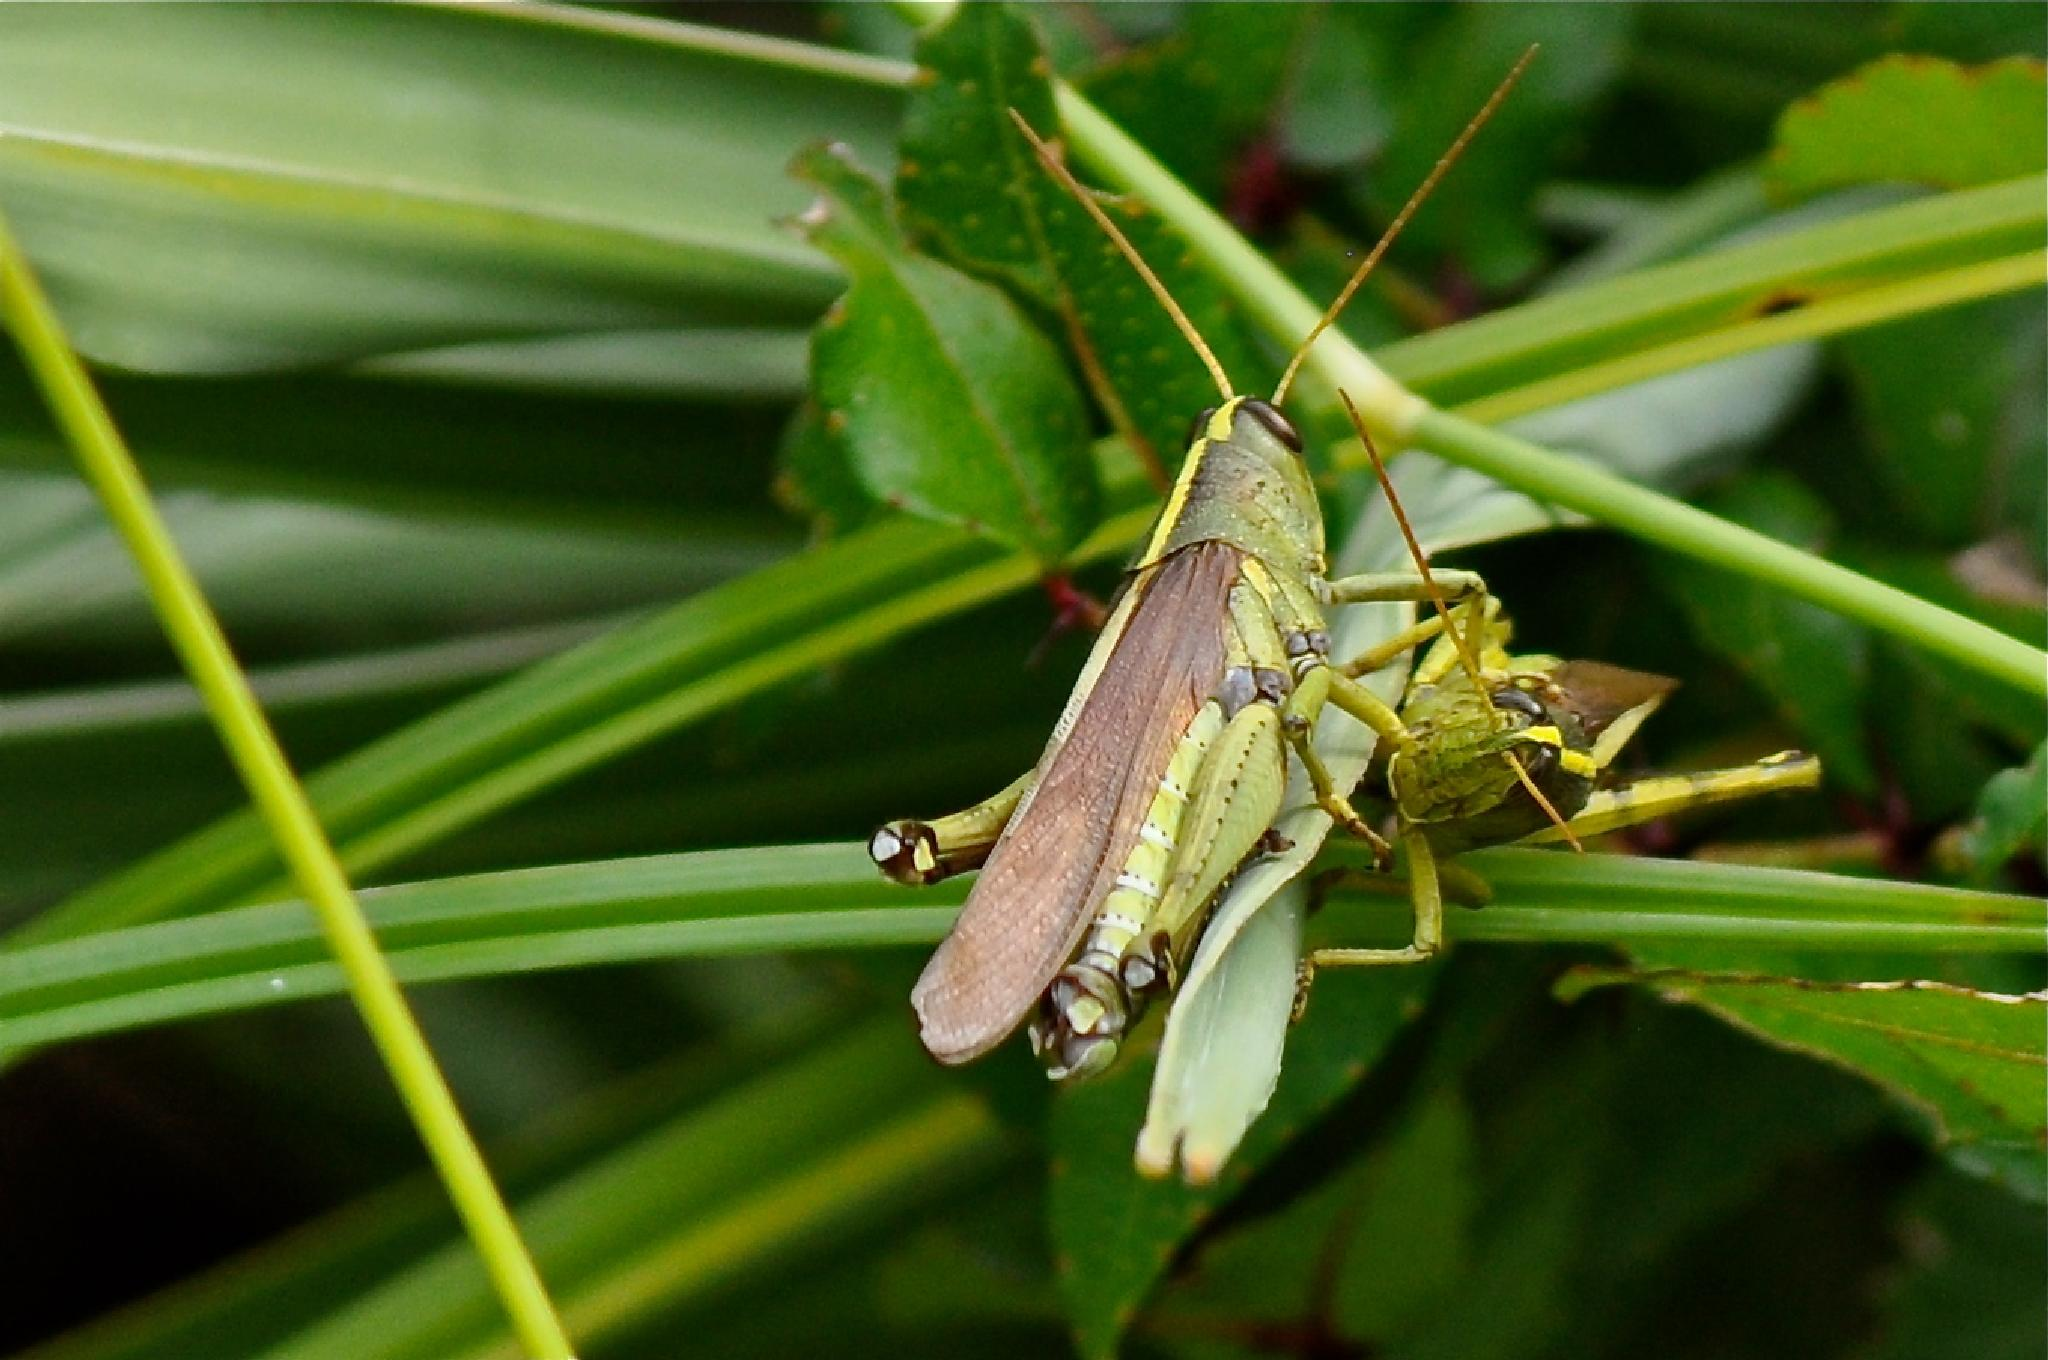 Pair of Locusts by peggy.hunt.378